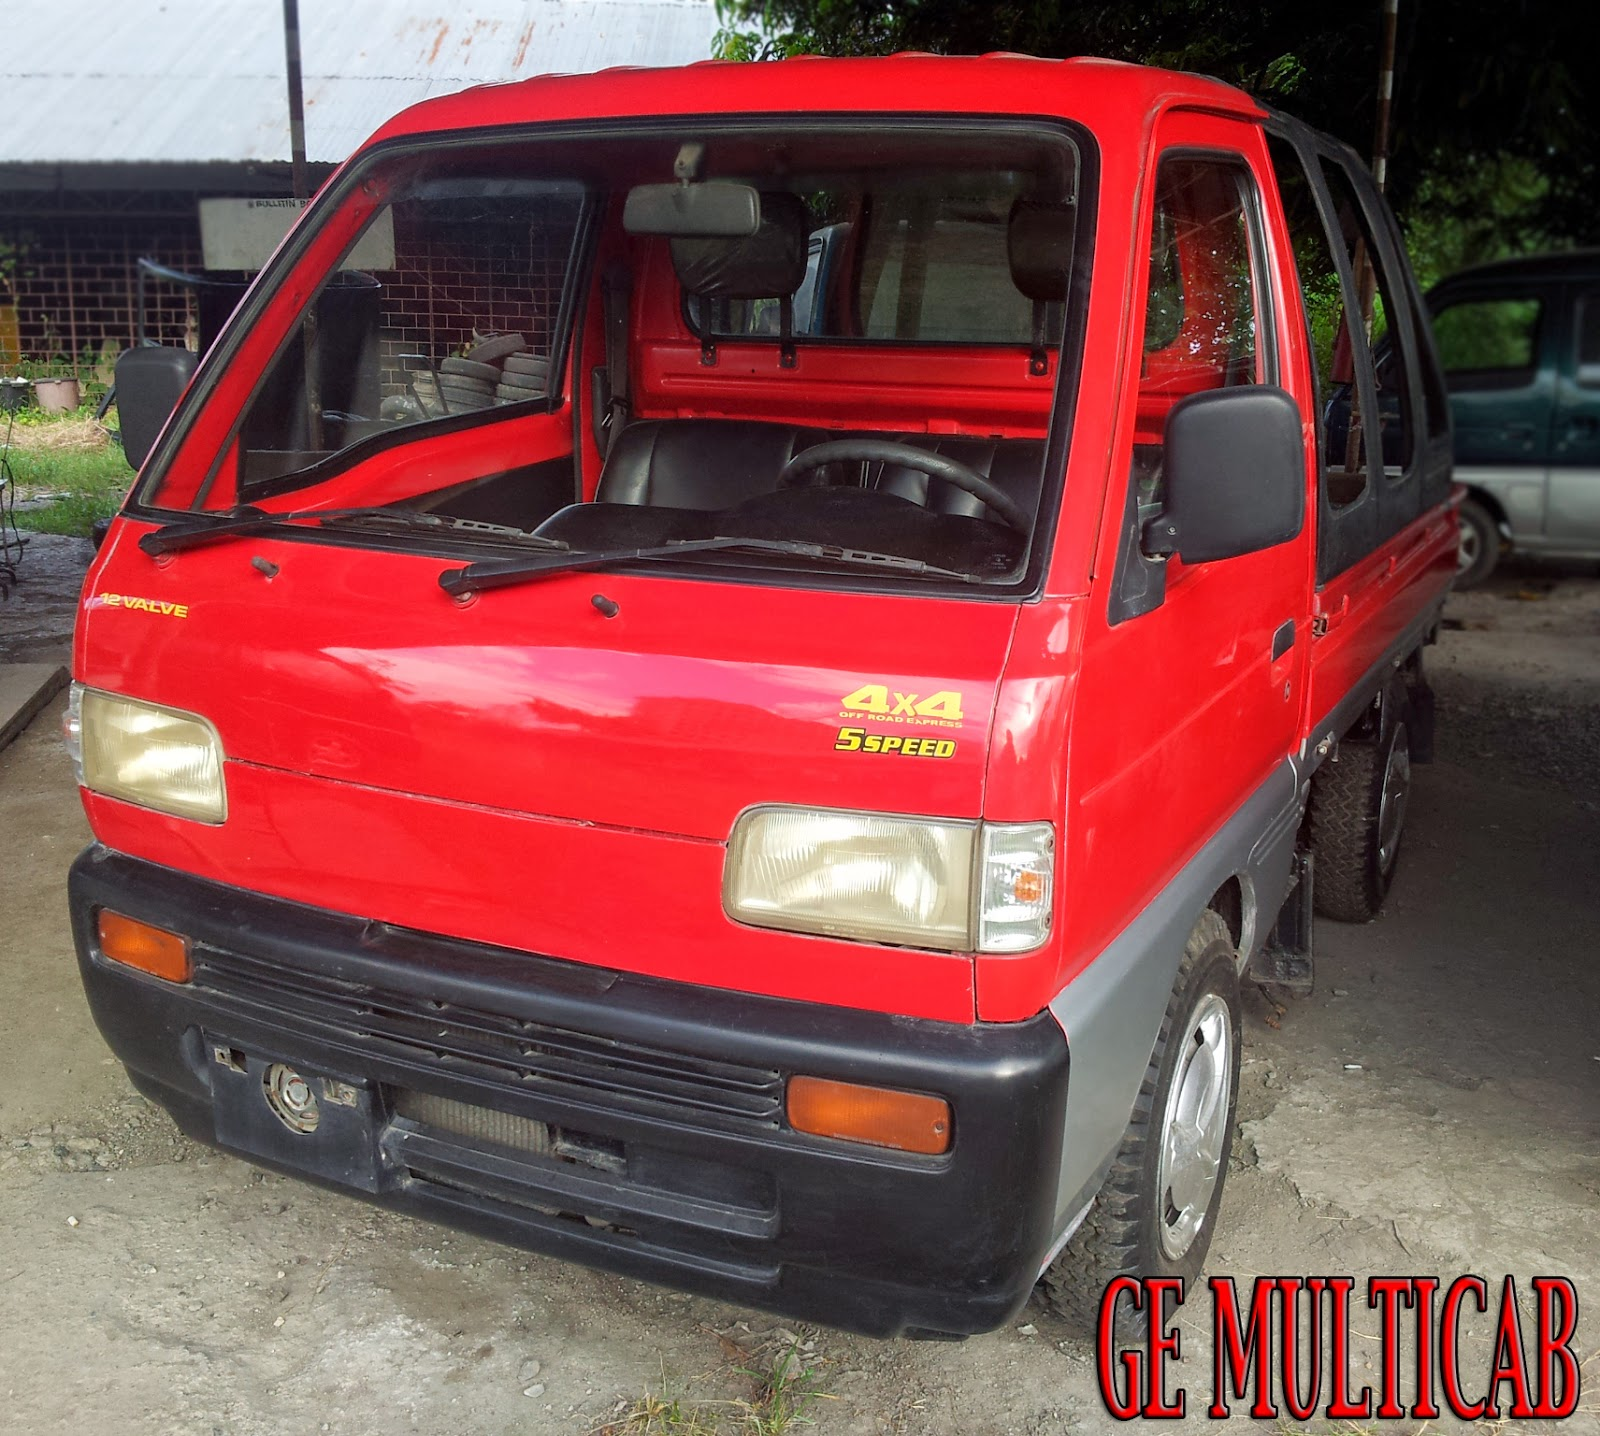 Cars Sale Cebu Awesome Suzuki Multicab Scrum Rush Sale Ge Home Loan Cars Electronic for